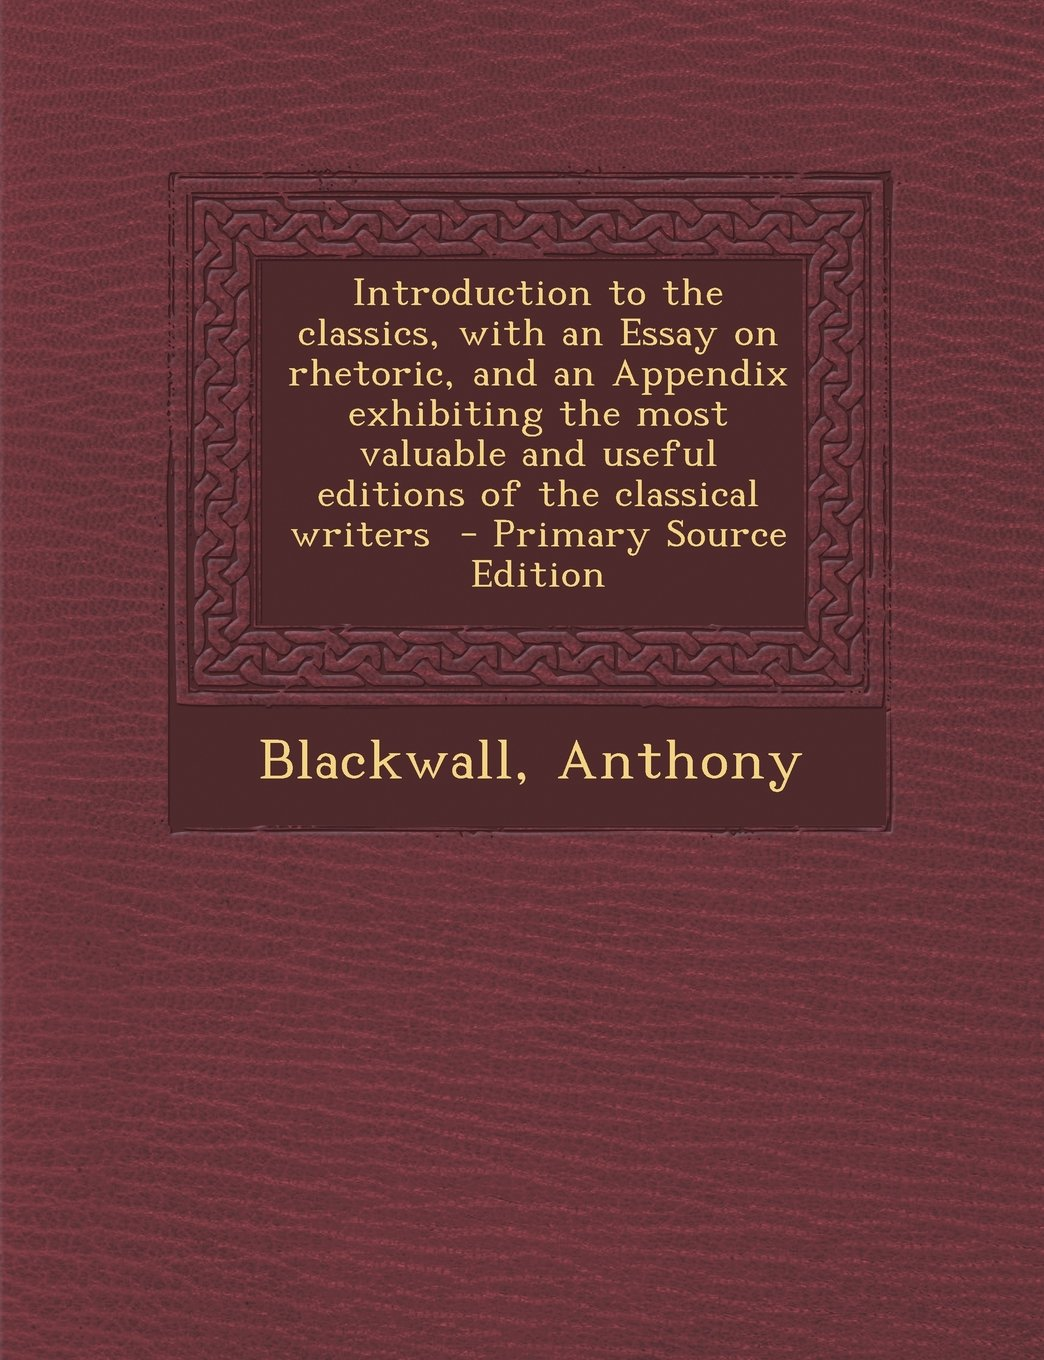 Download Introduction to the Classics, with an Essay on Rhetoric, and an Appendix Exhibiting the Most Valuable and Useful Editions of the Classical Writers - P pdf